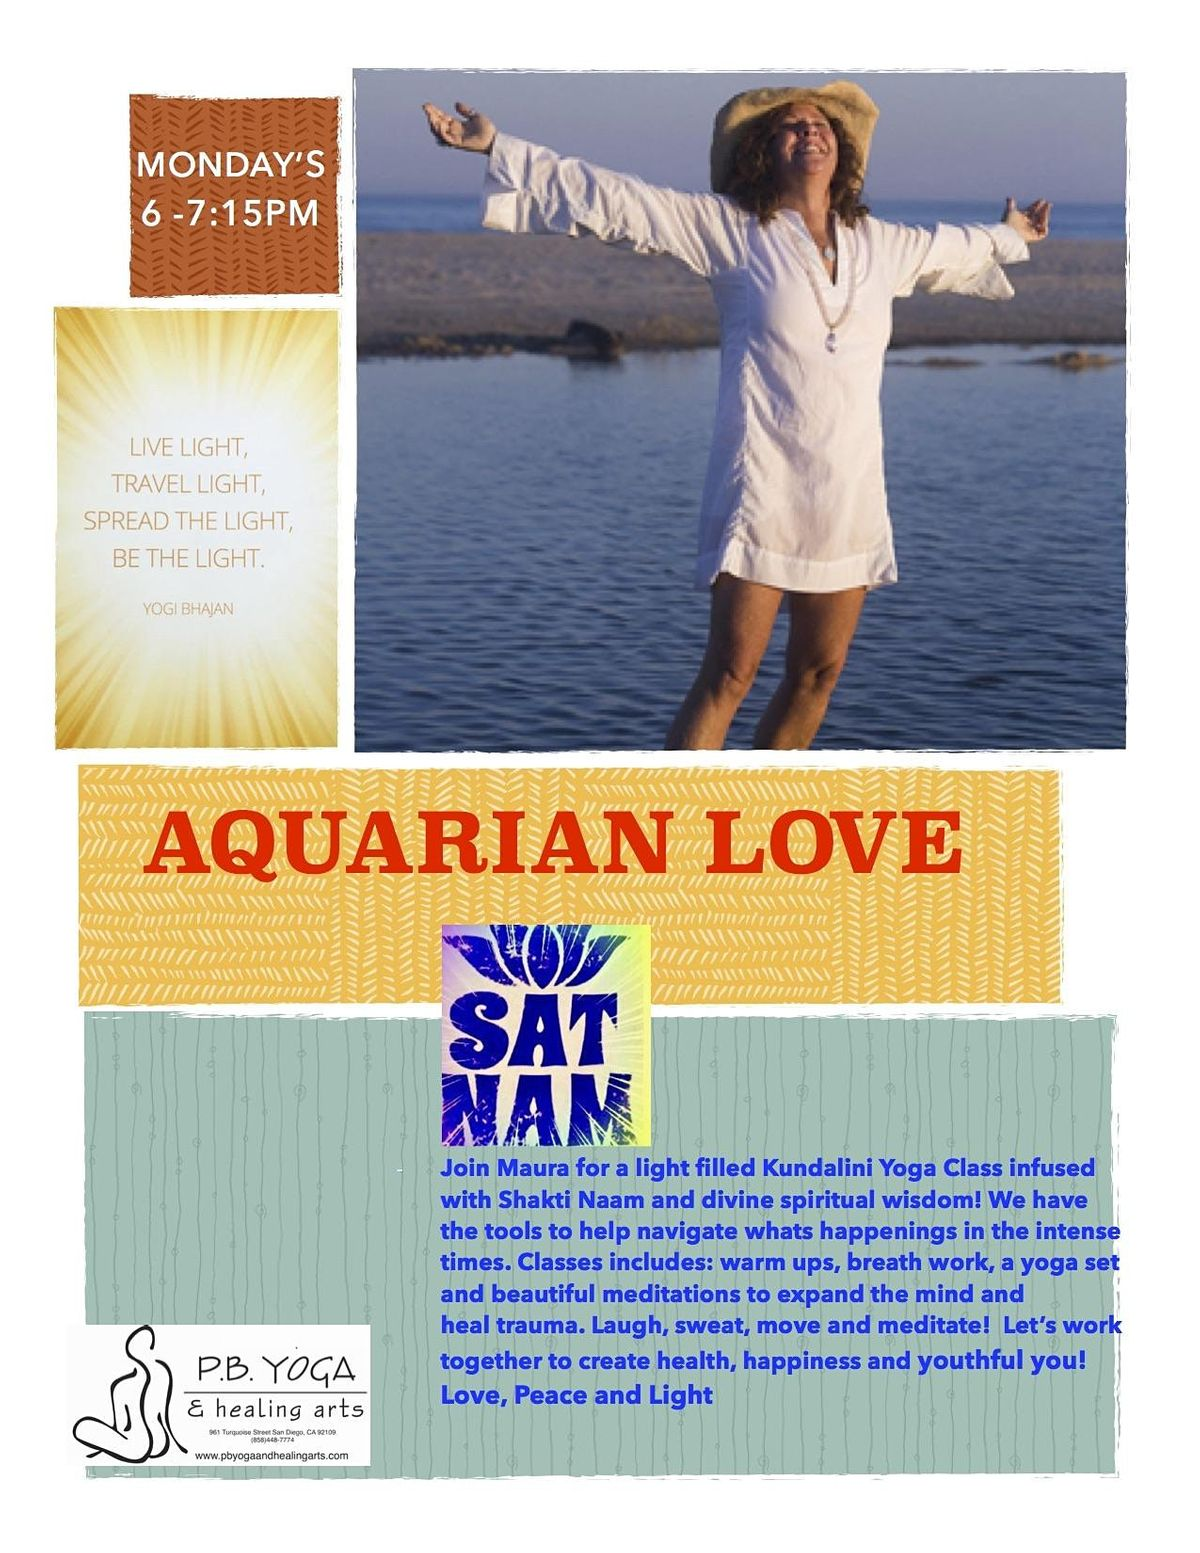 Aquarian Love Kundalini Yoga At P B Yoga Healing Arts San Diego